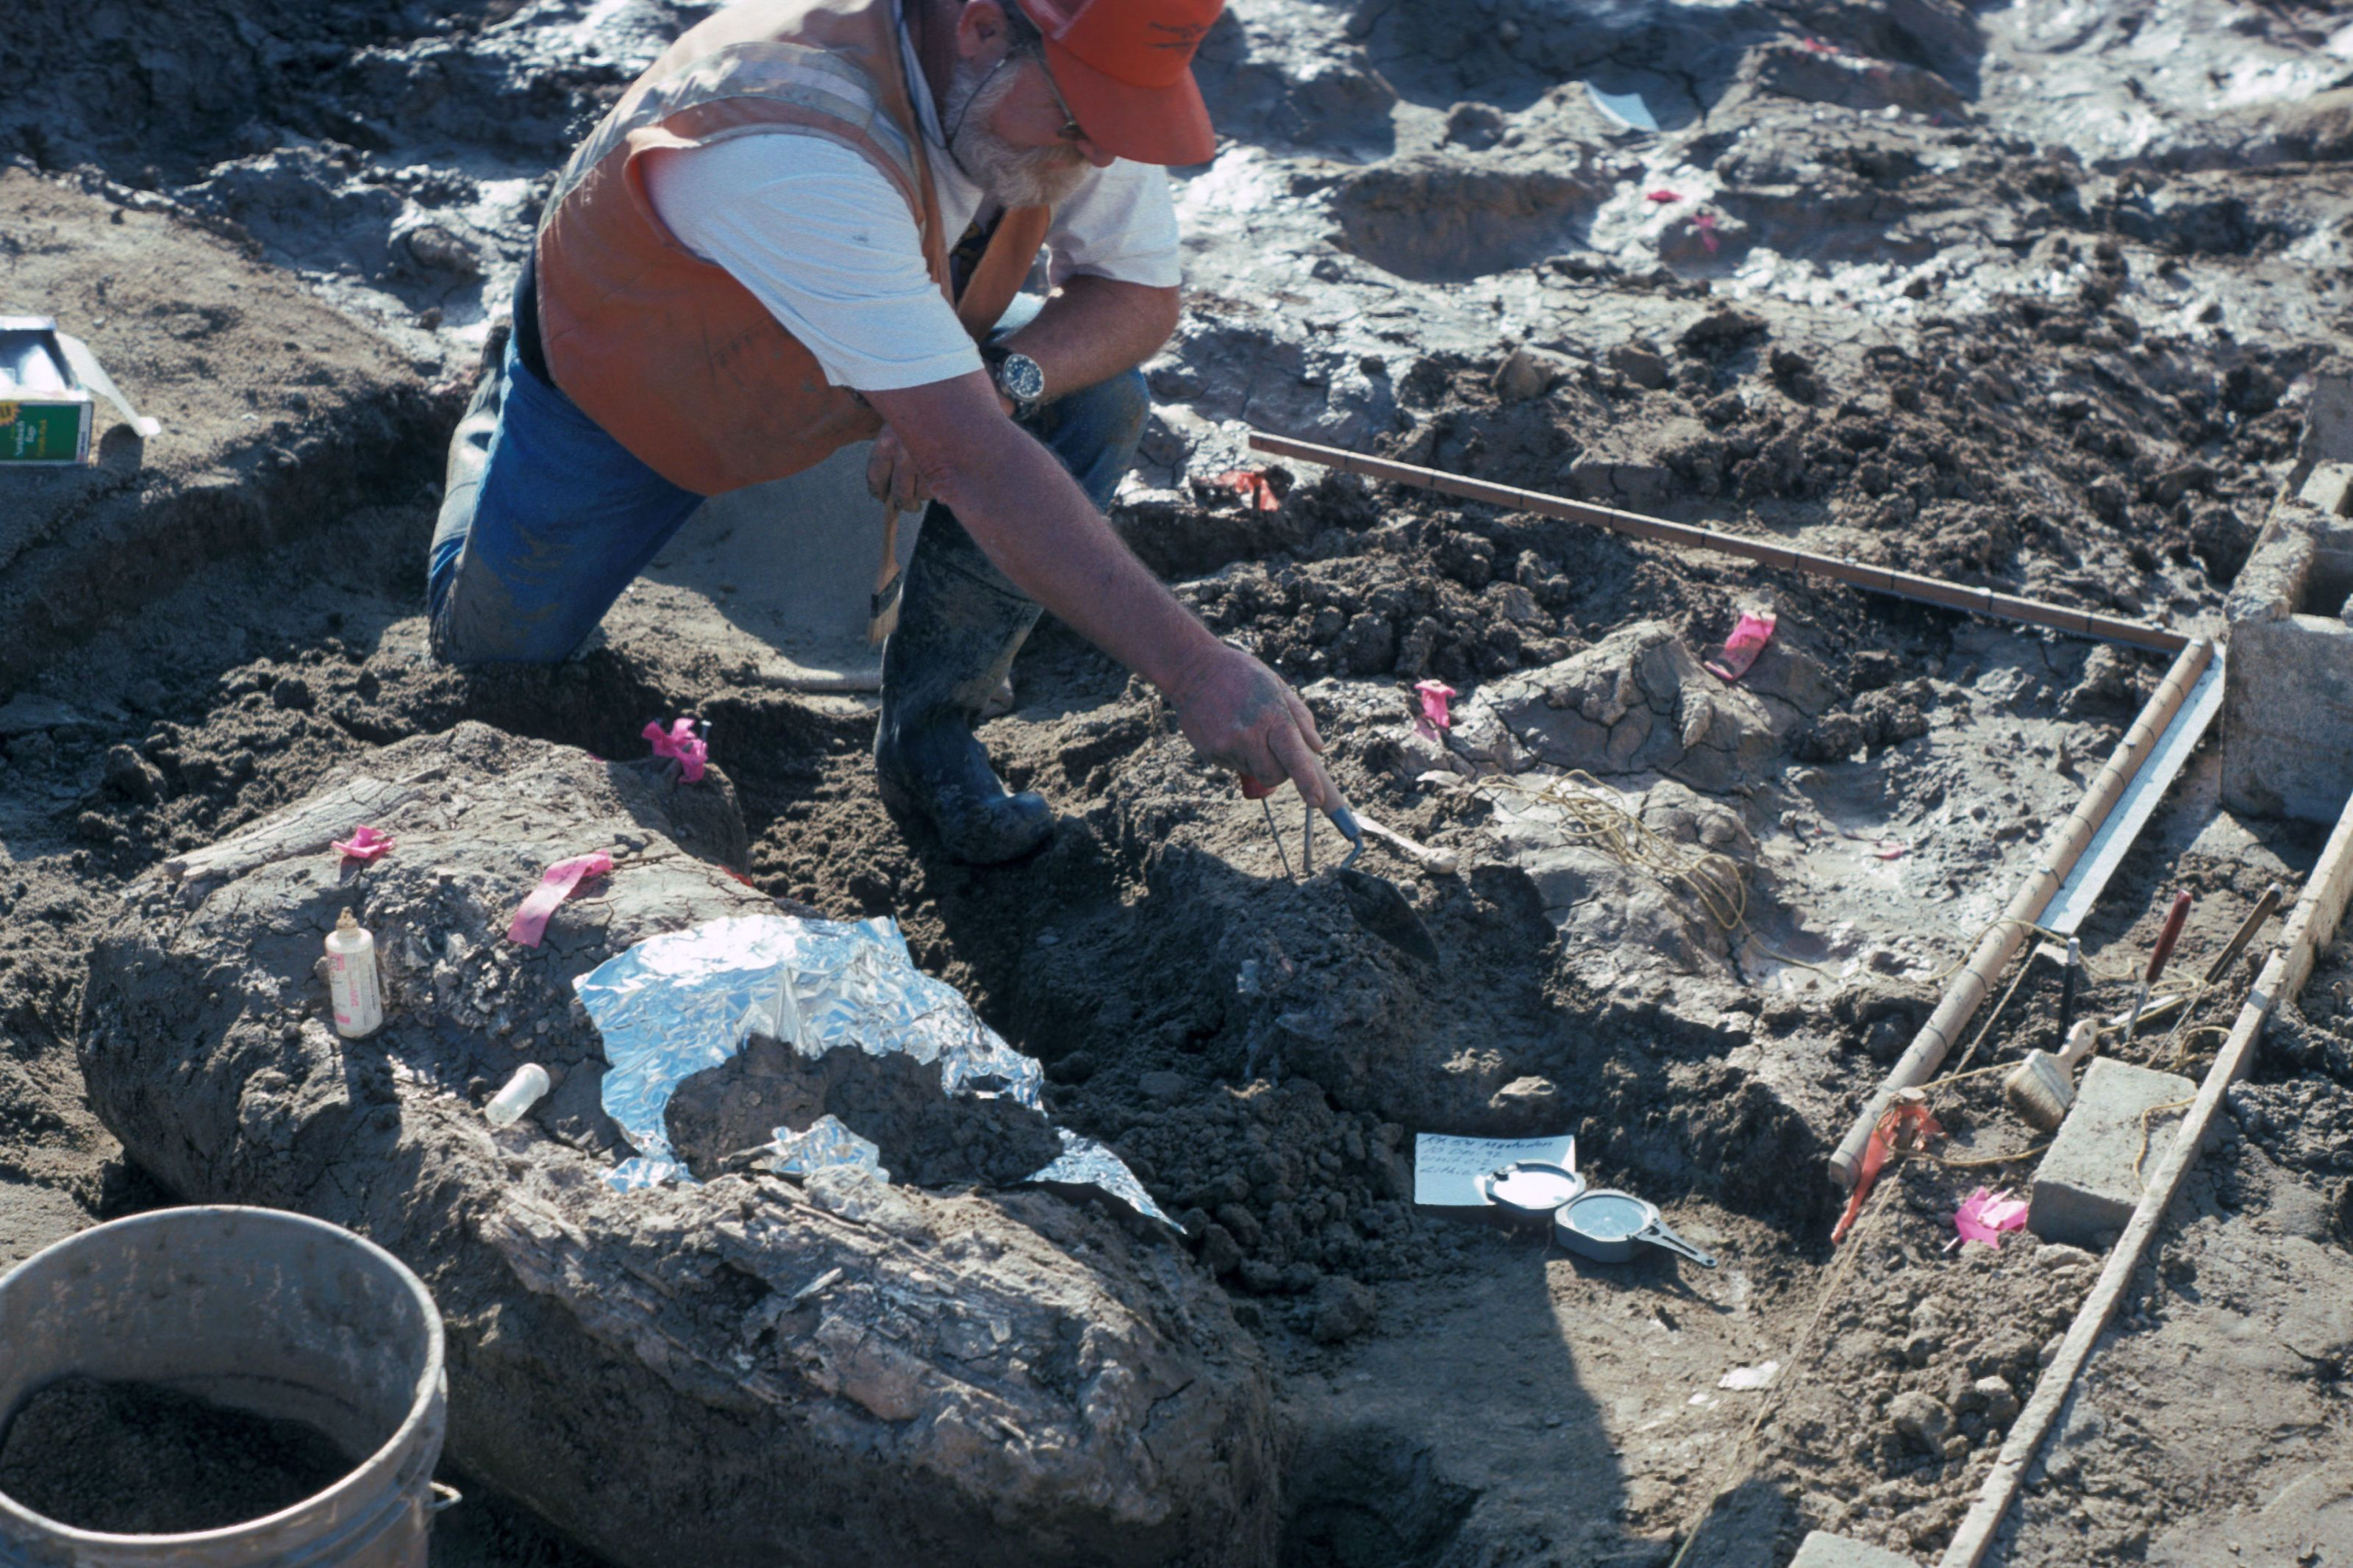 Jaw-Dropping Study Says Some Human Relative Was in California 130,000 Years Ago